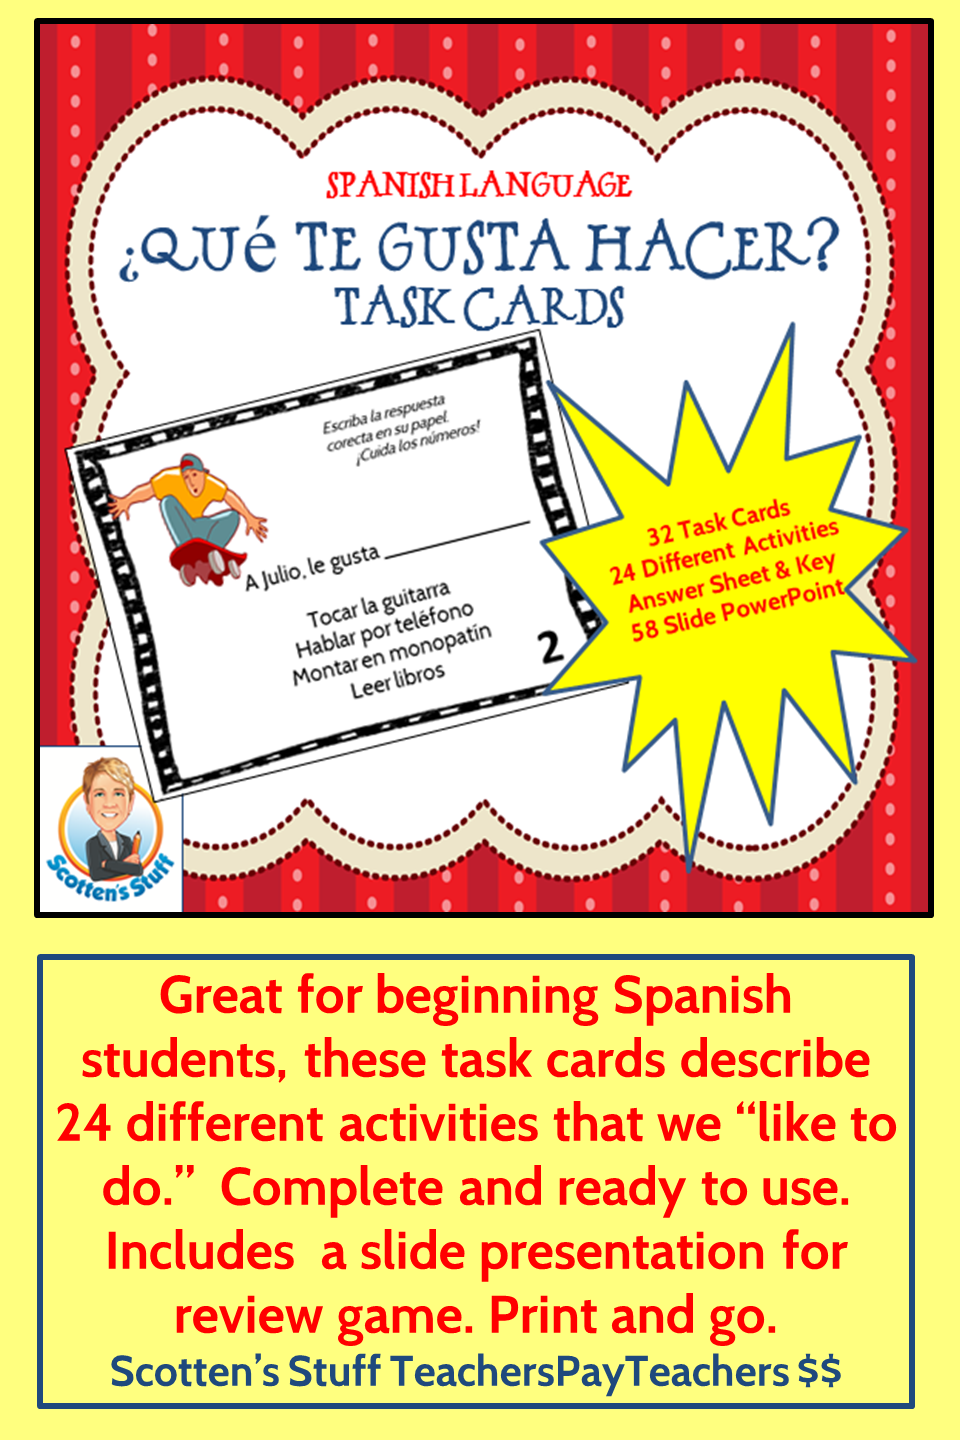 Spanish Language Task Cards for Que te gusta hacer or